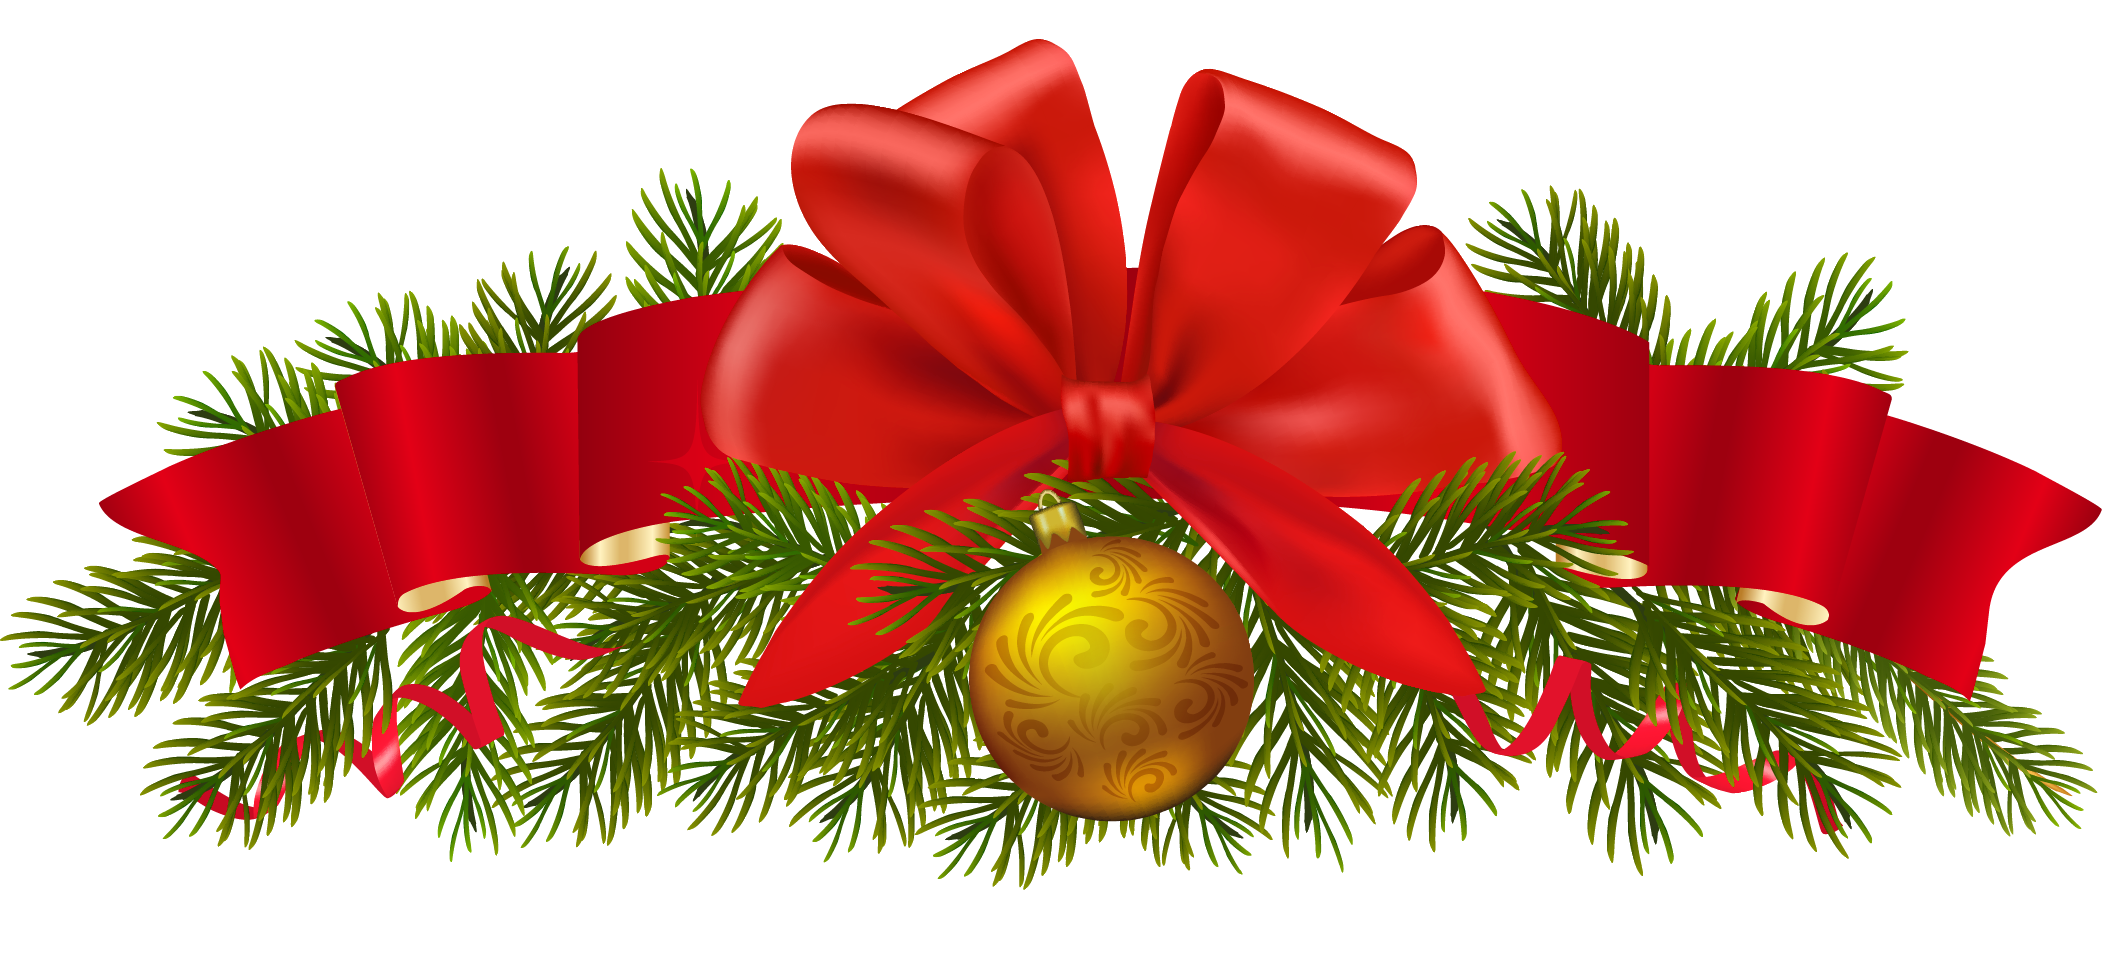 Christmas Ornaments PNG HD - Christmas HD PNG